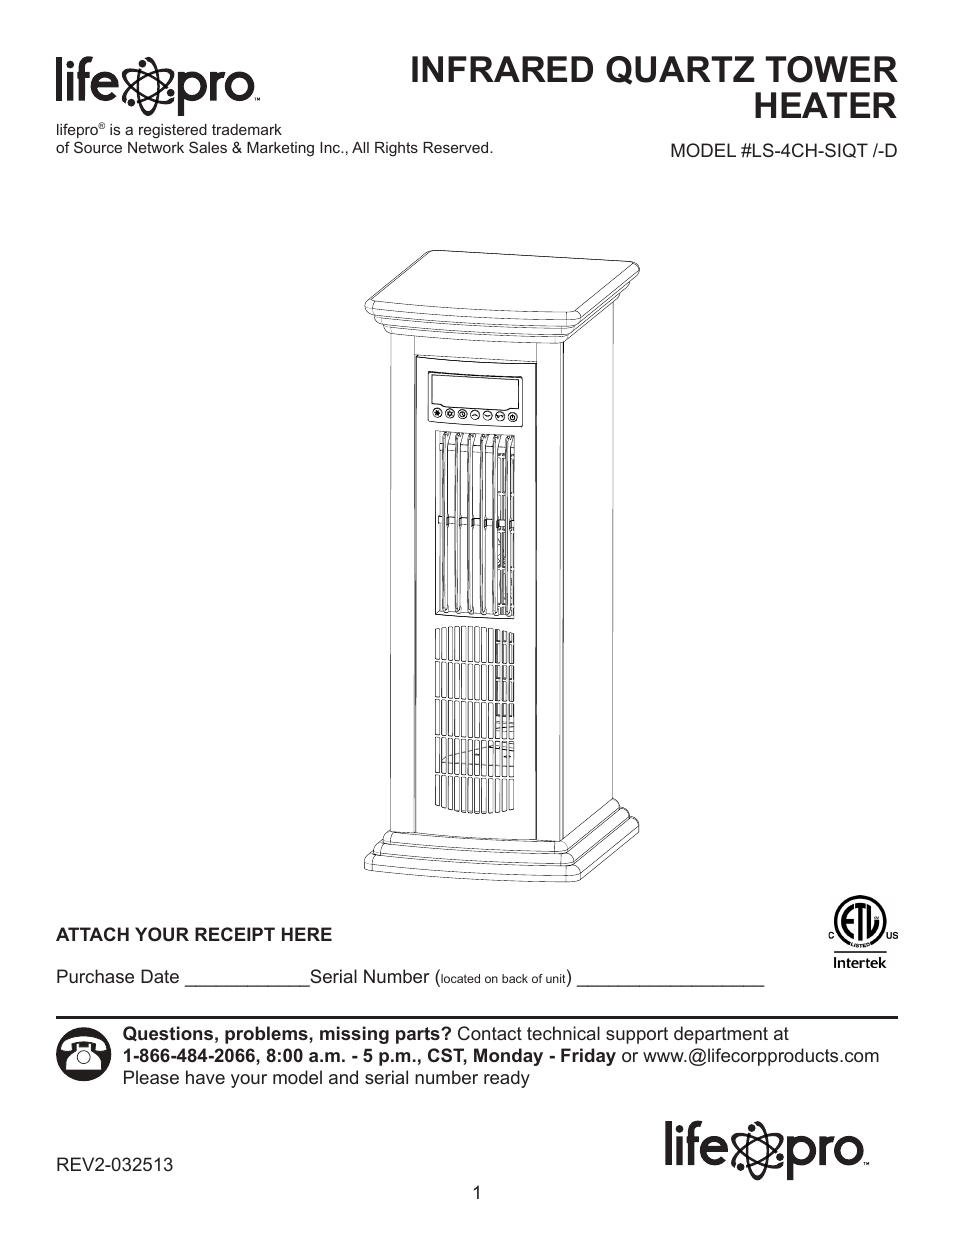 lifesmart infrared heater wiring diagram western star